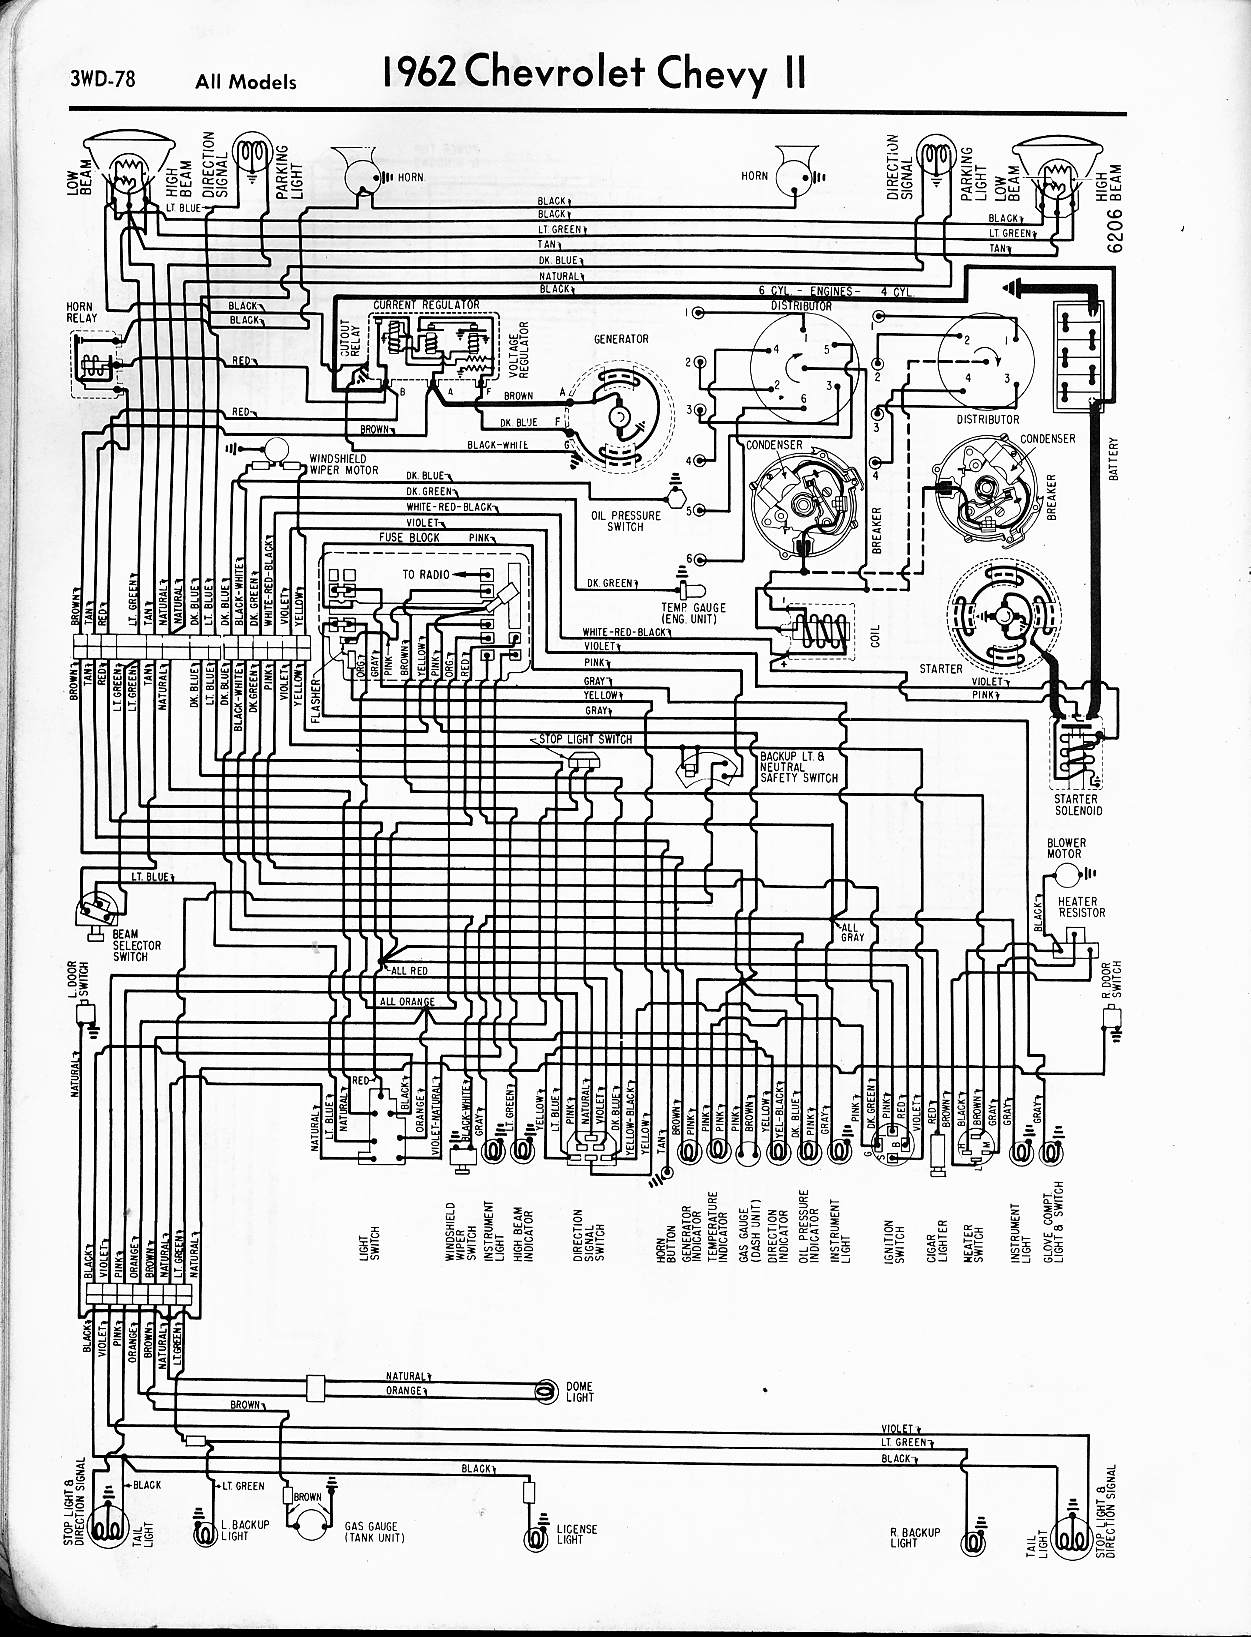 MWireChev62_3WD 078 1967 camaro turn signal wiring diagram free download wiring